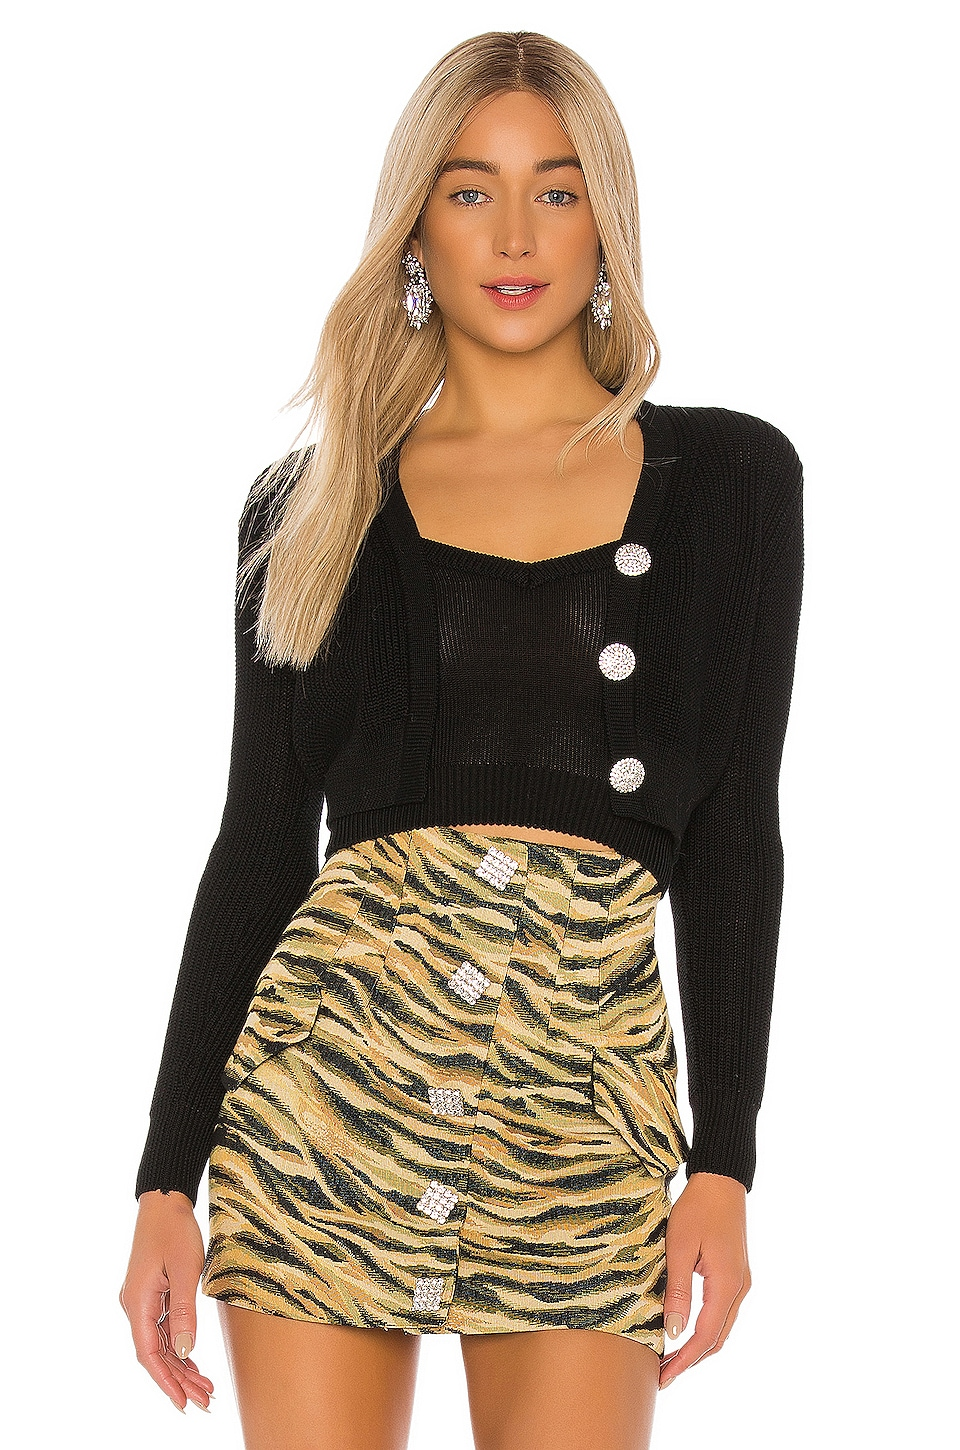 GIUSEPPE DI MORABITO Cropped Cardigan in Black